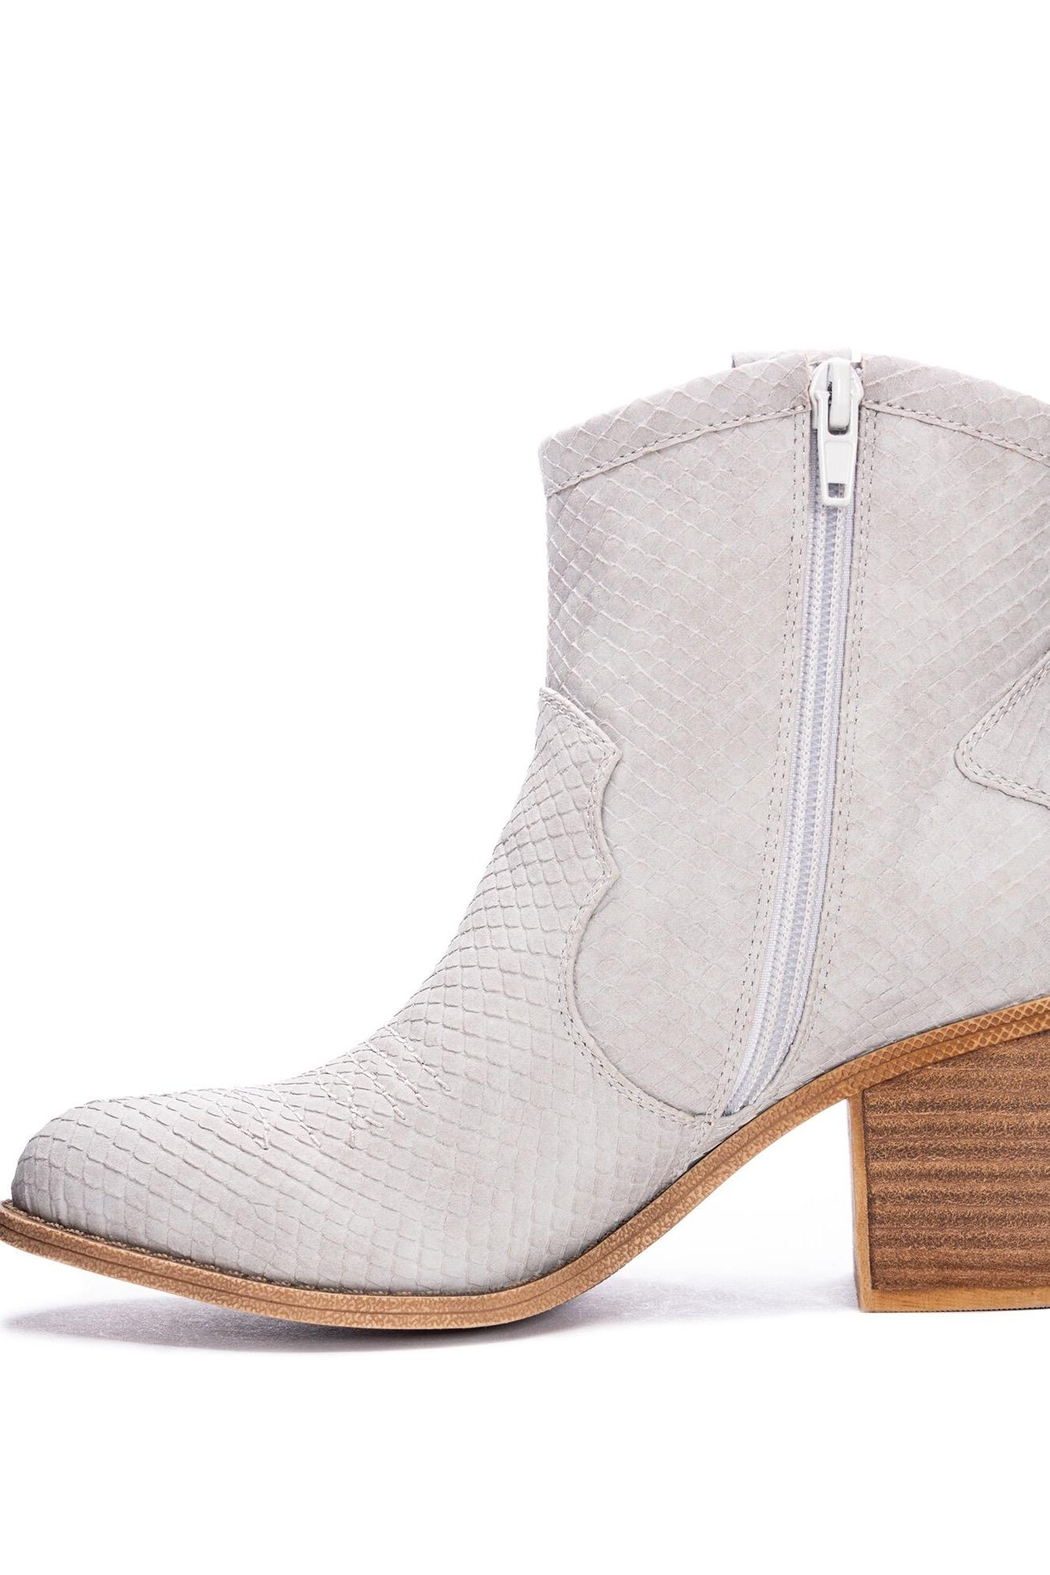 Dirty Laundry Unite Snakeskin Booties - Front Full Image